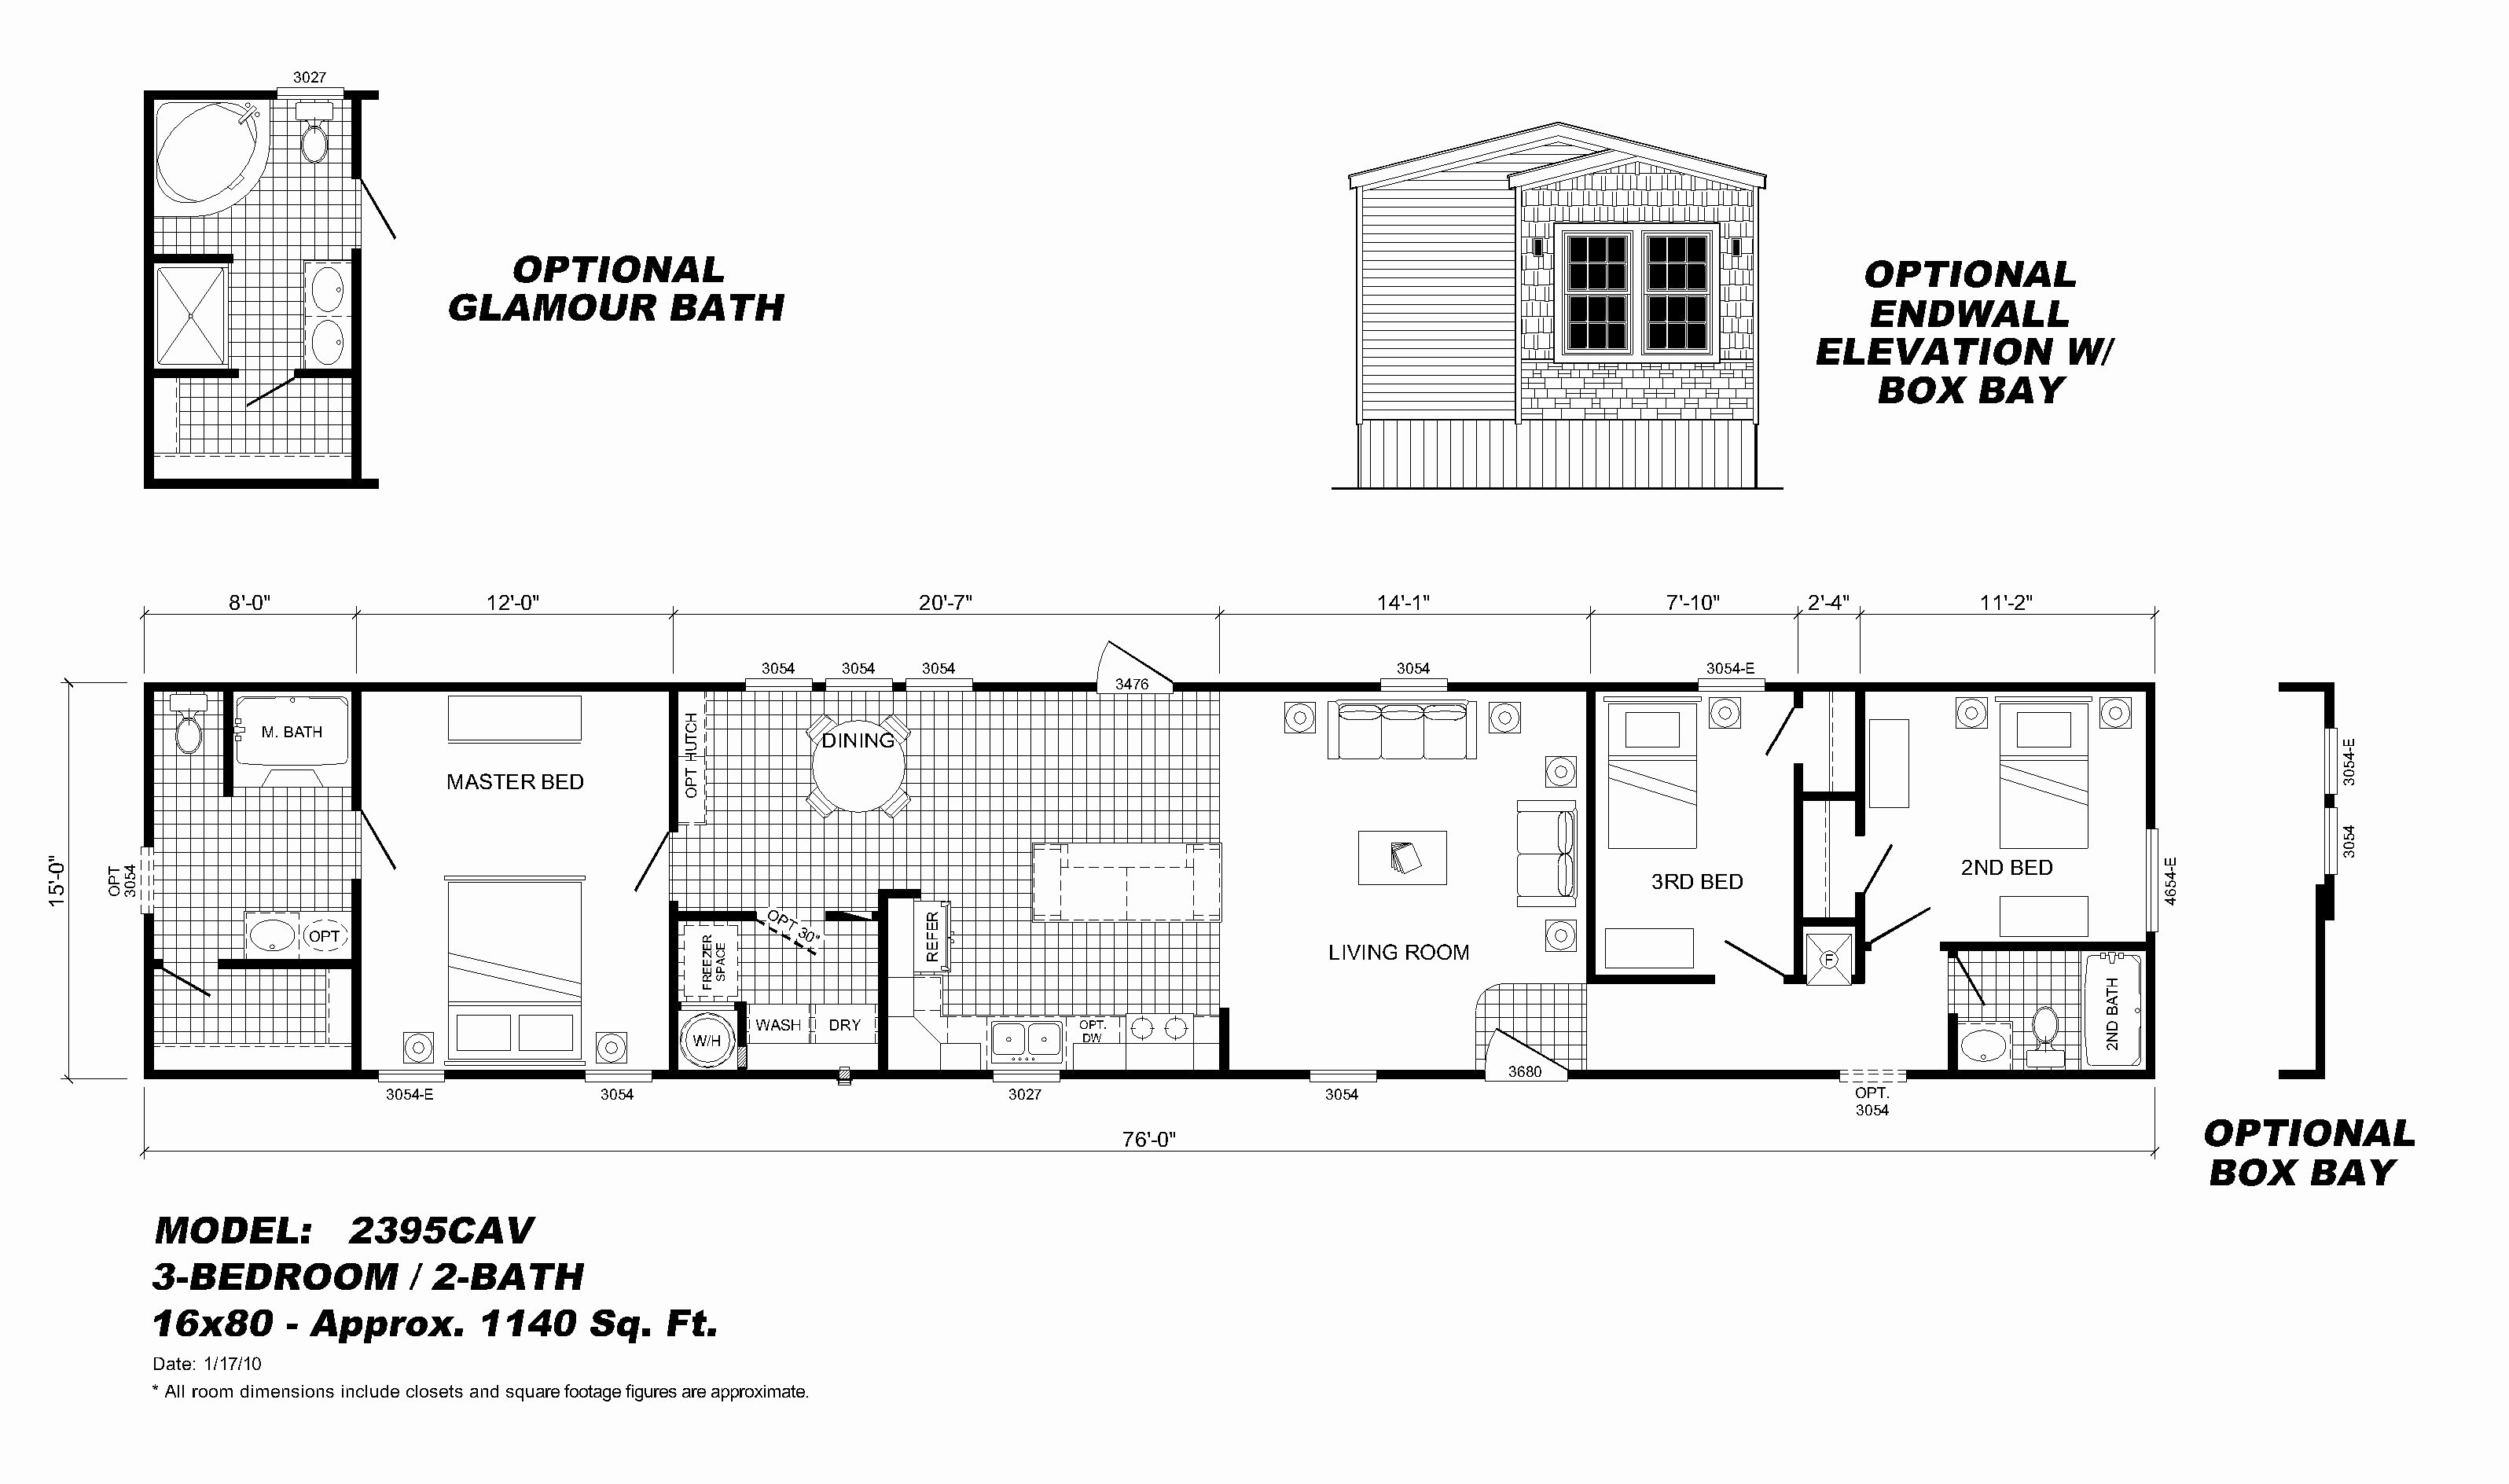 Fleetwood Double Wide Mobile Home Wiring Diagrams | Wiring Diagram - Manufactured Home Wiring Diagram